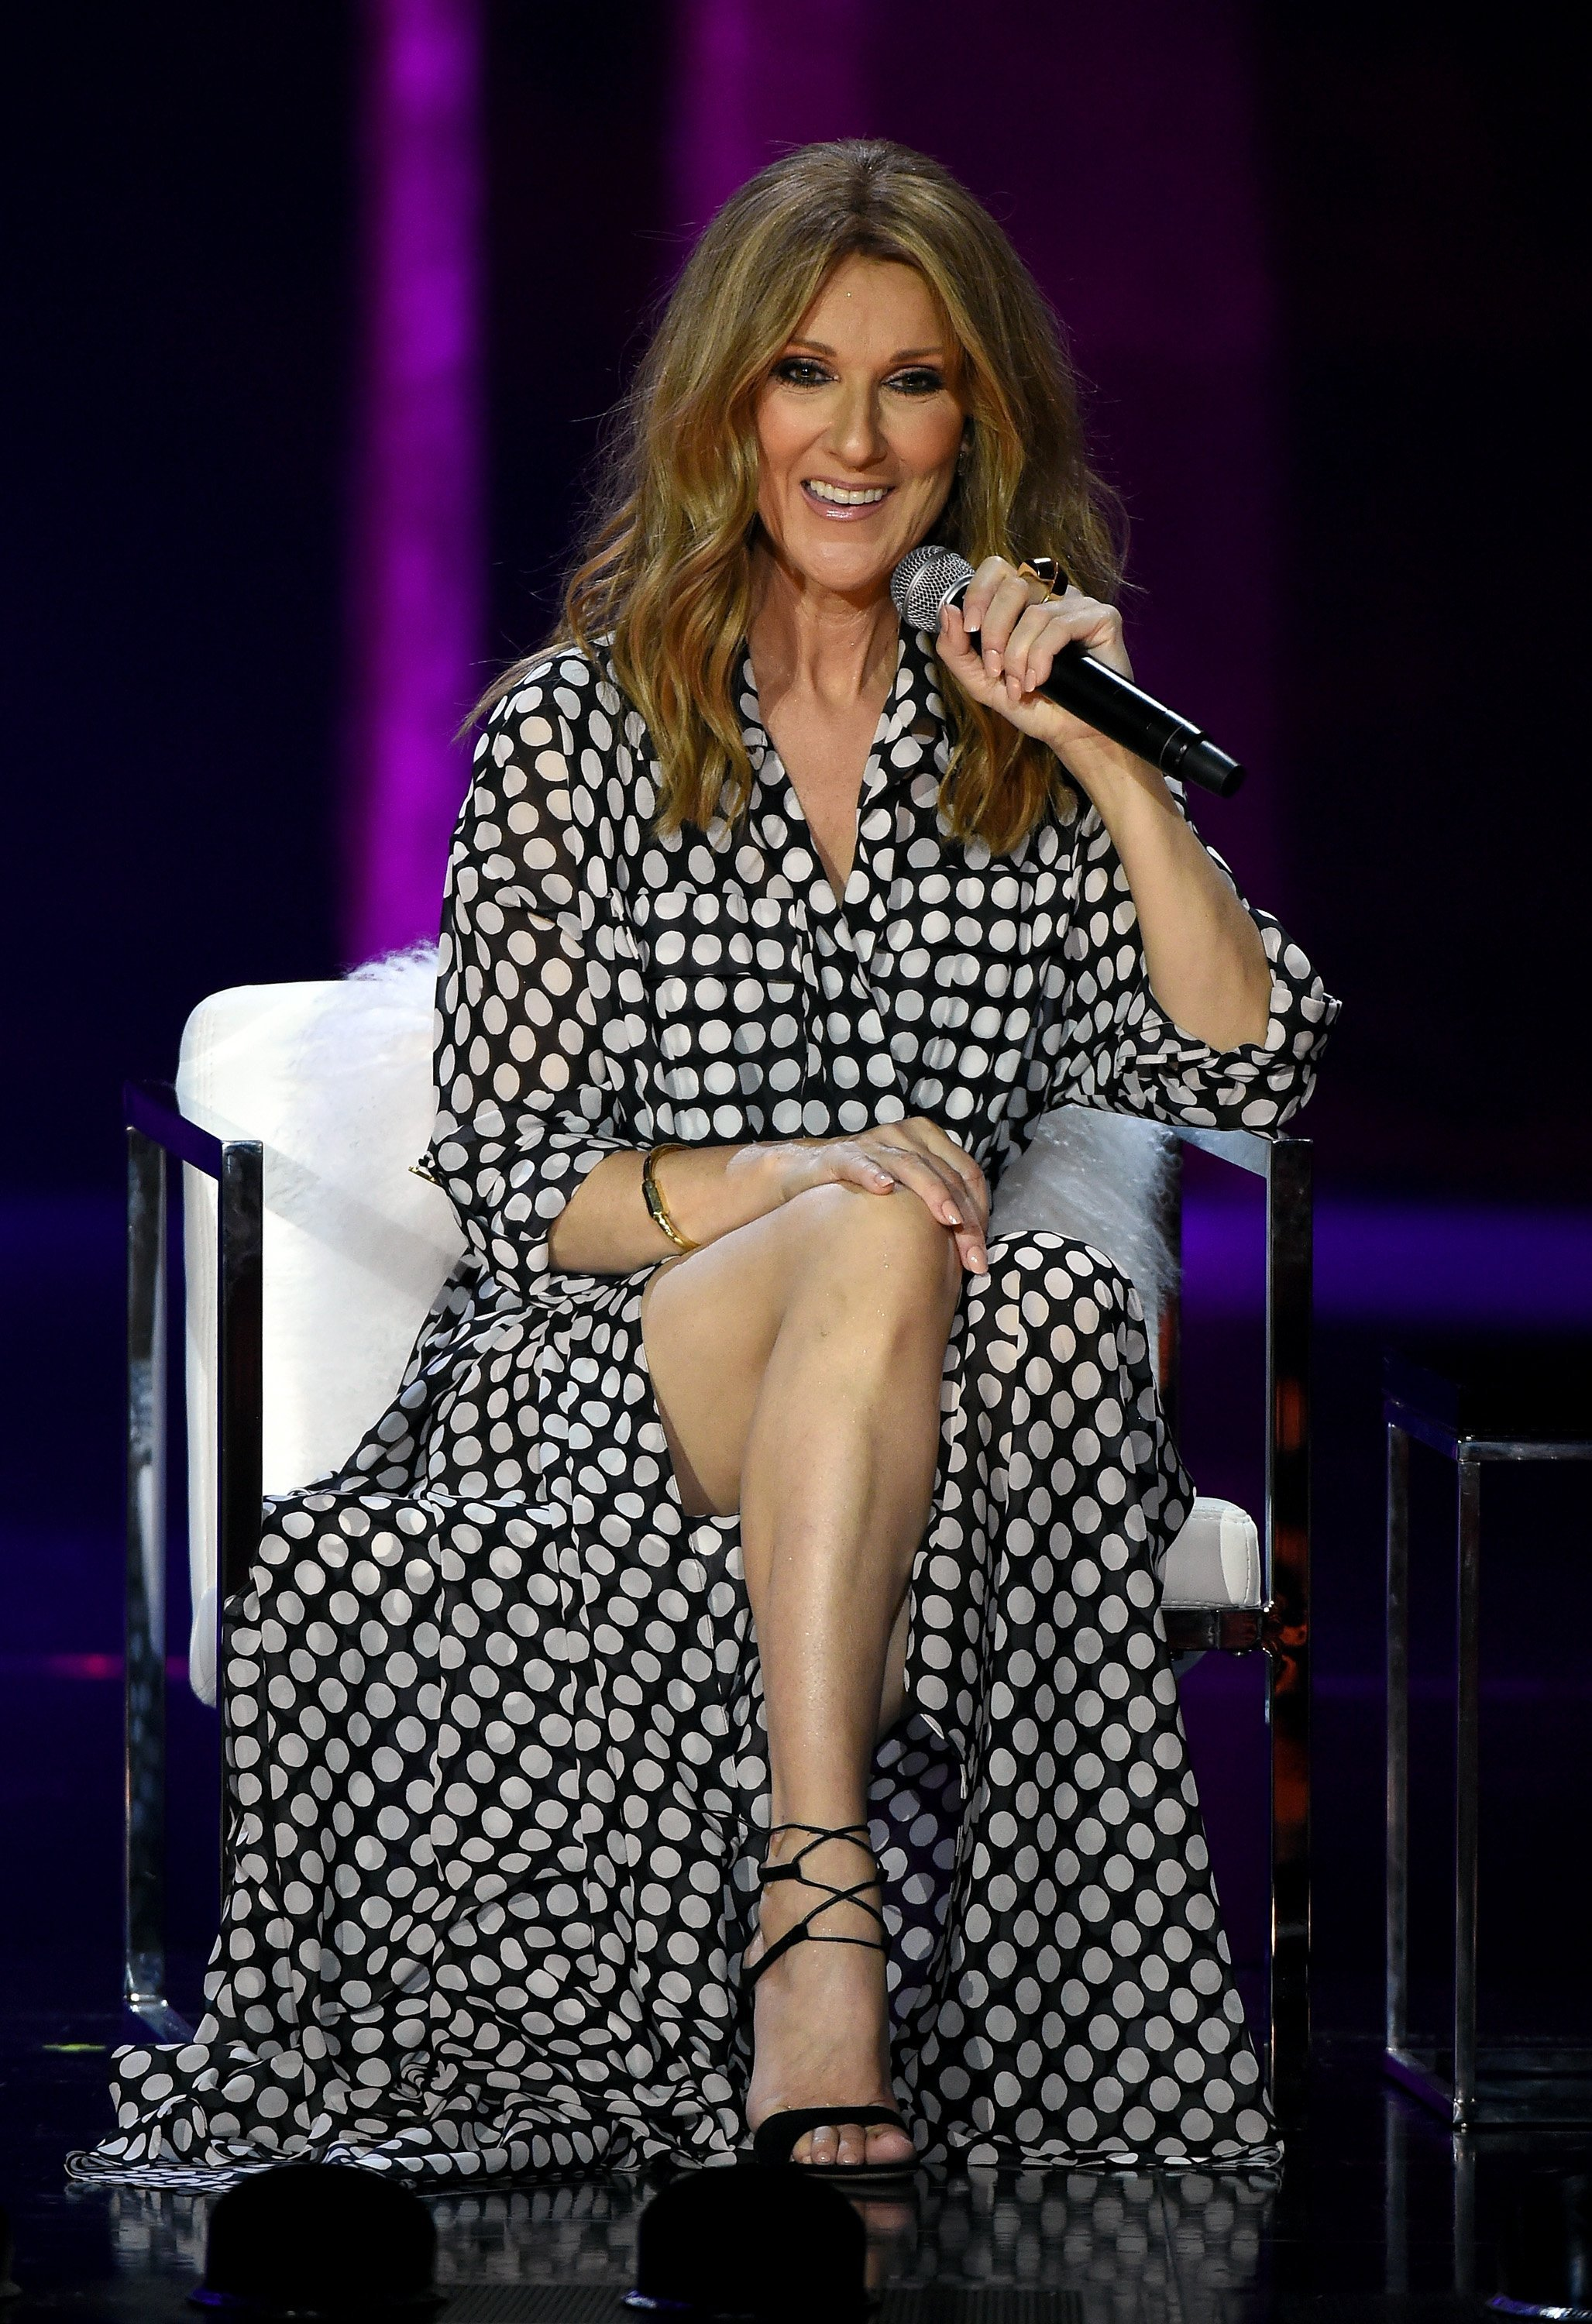 Celine Dion speaks at a news conference at The Colosseum at Caesars Palace on August 27, 2015 | Photo: Getty Images